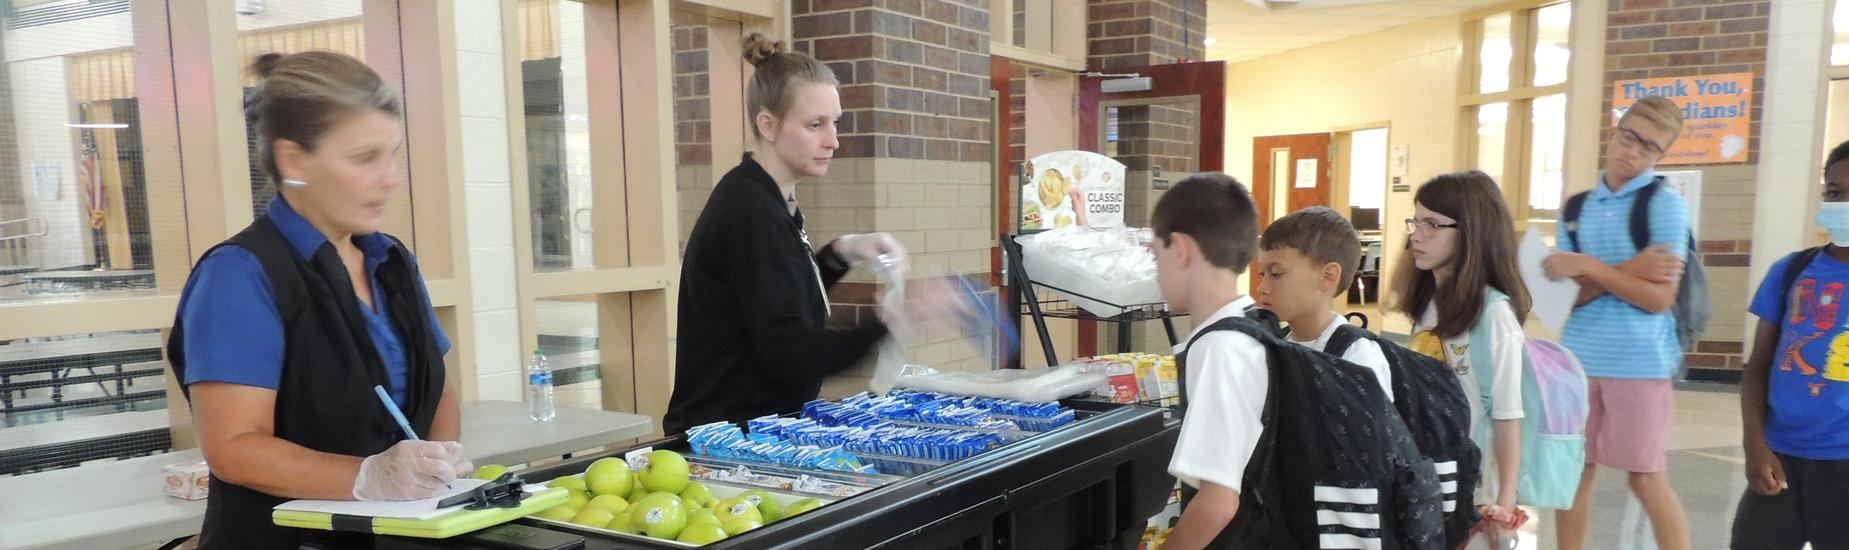 Students getting breakfast in the commons area at Westview.